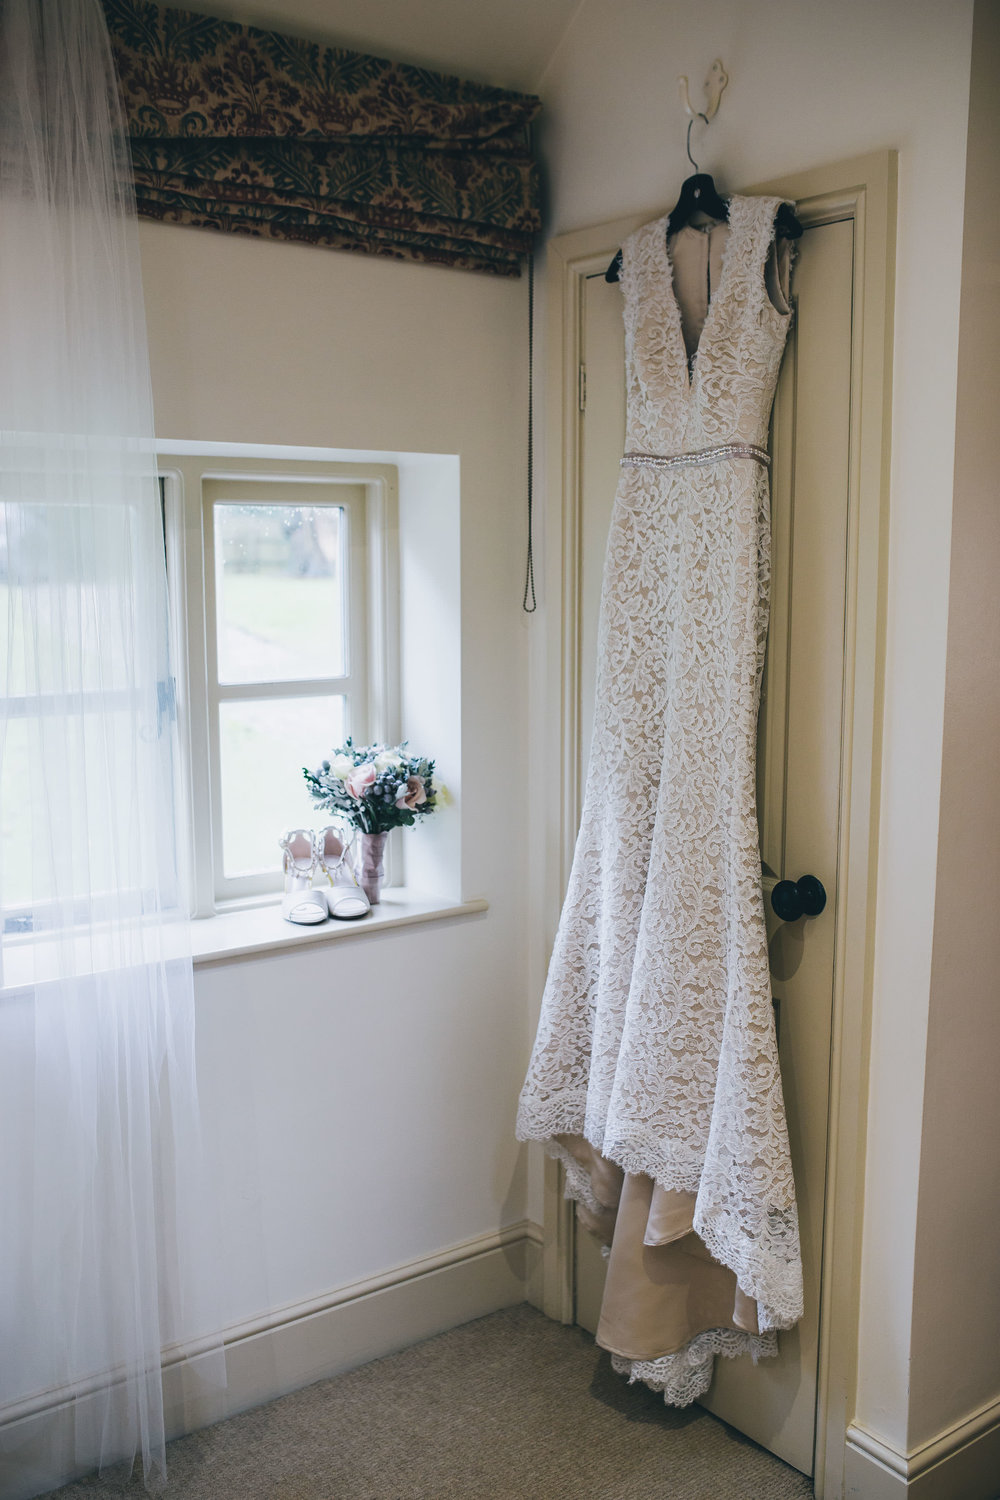 The lace wedding dress hung up. A winter wedding at Combermere Abbey.